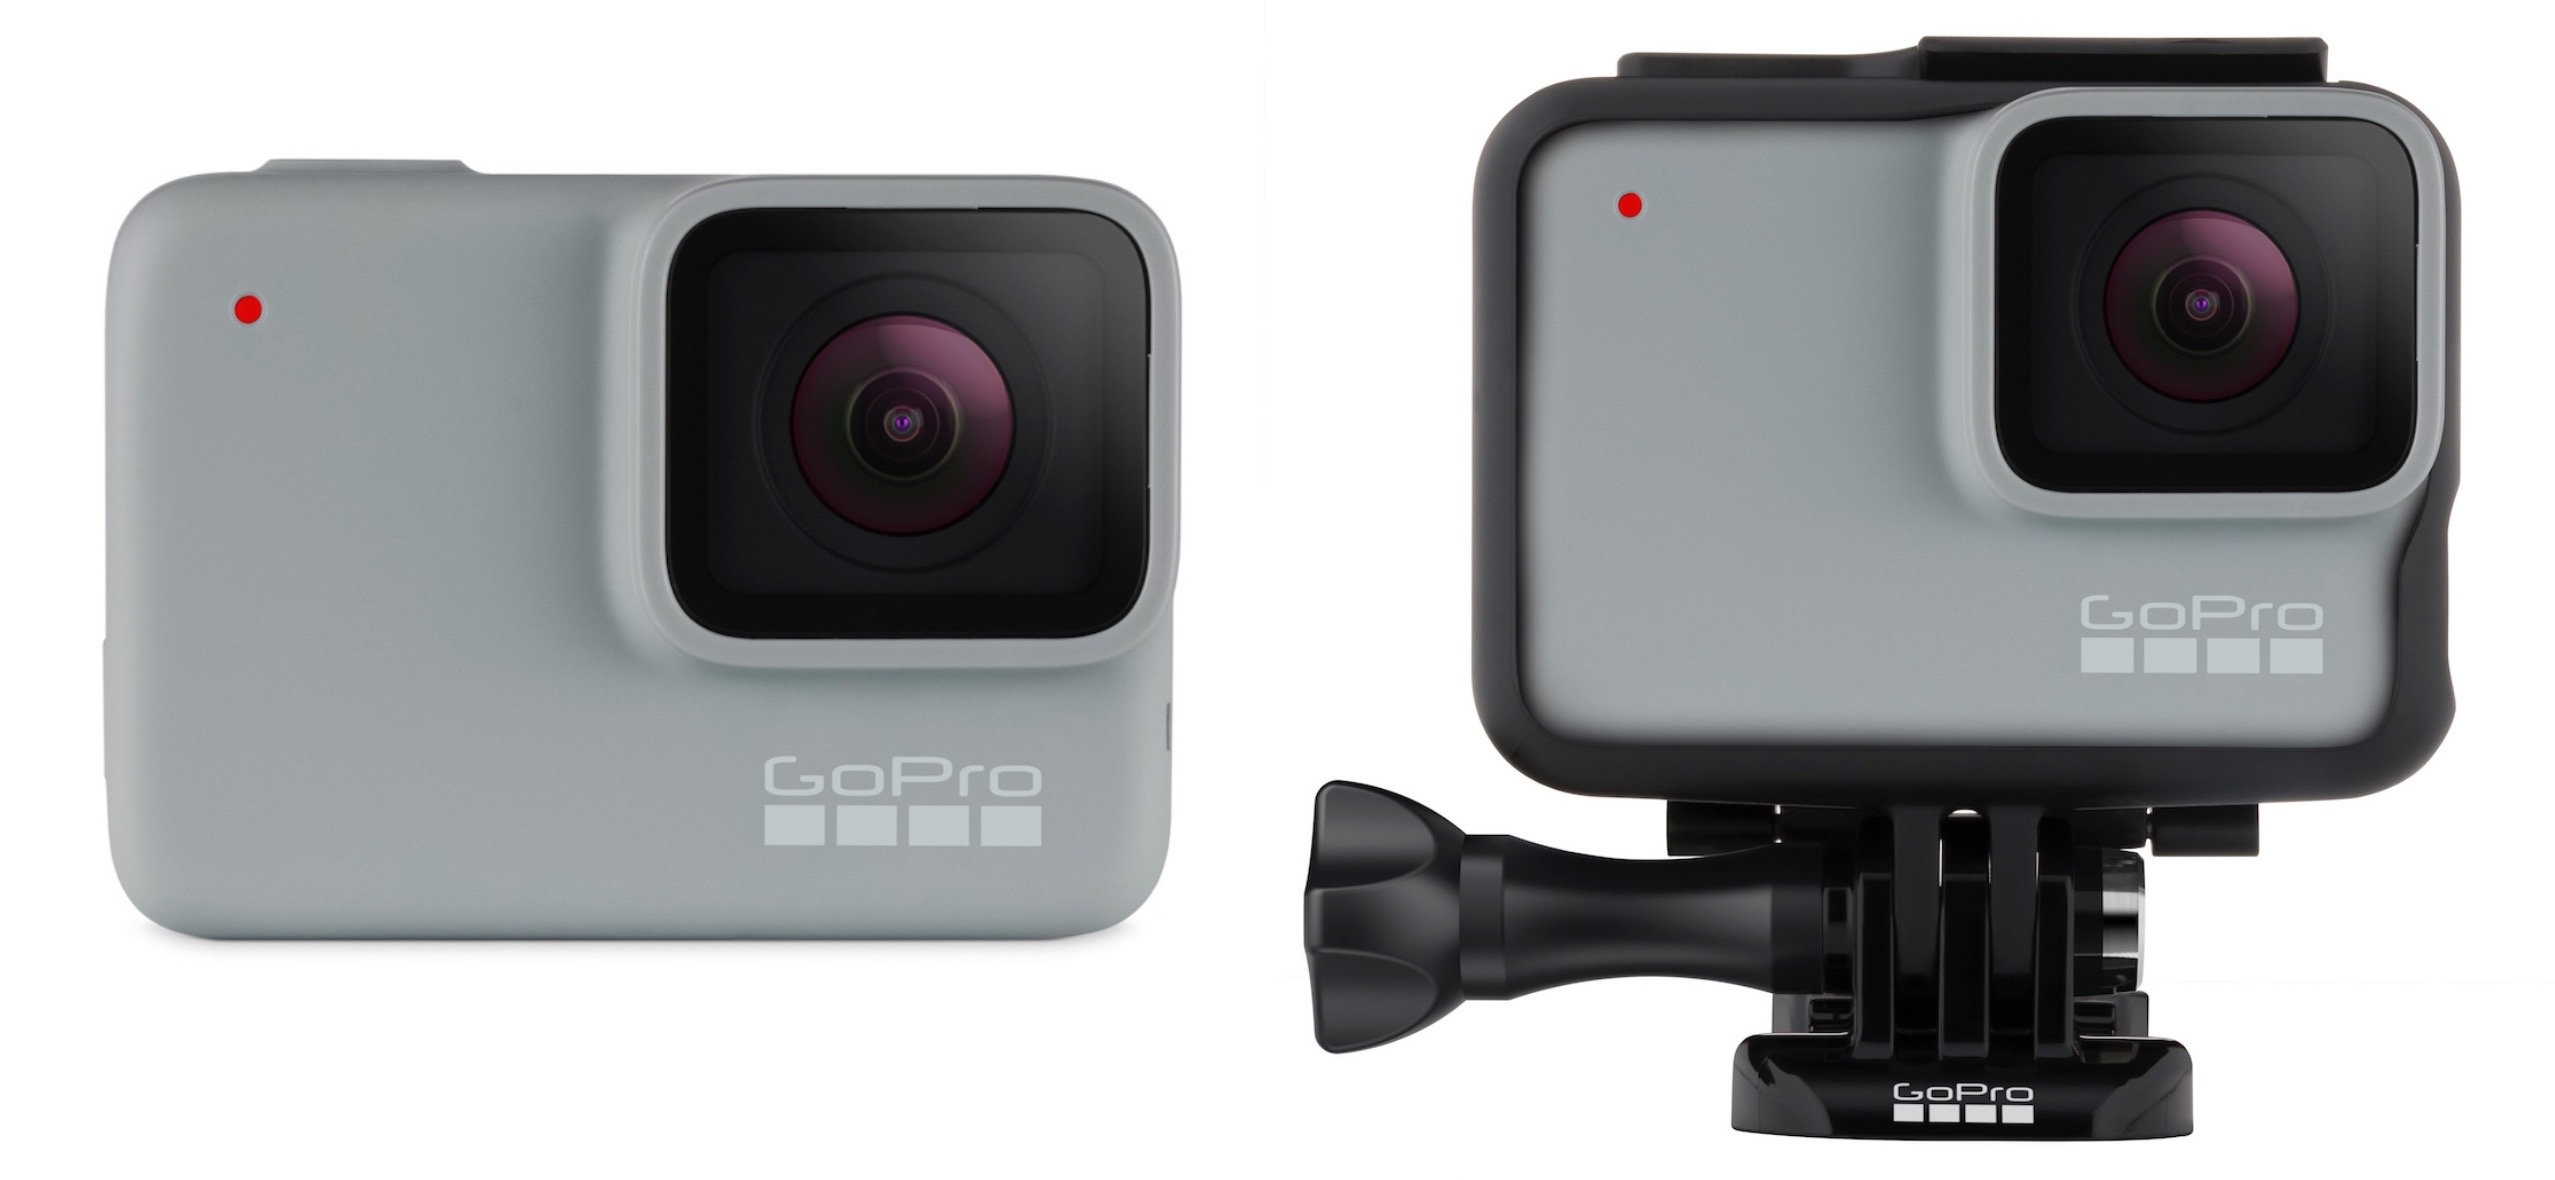 The new GoPro HERO7 White